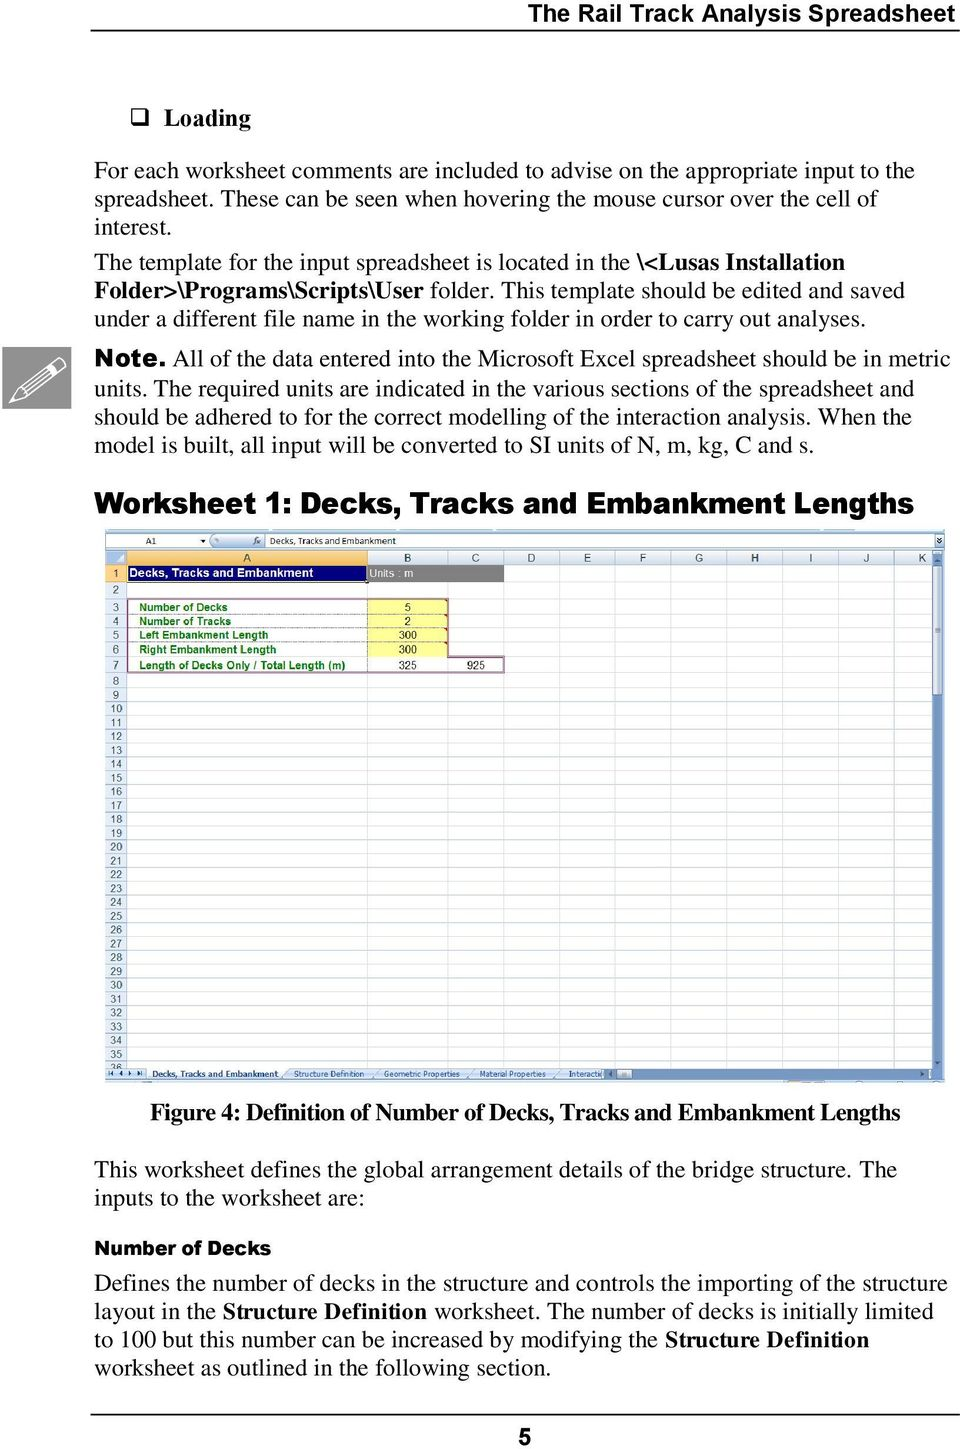 Rail Track Analysis User Manual  LUSAS Version 15 0 : Issue 1 - PDF